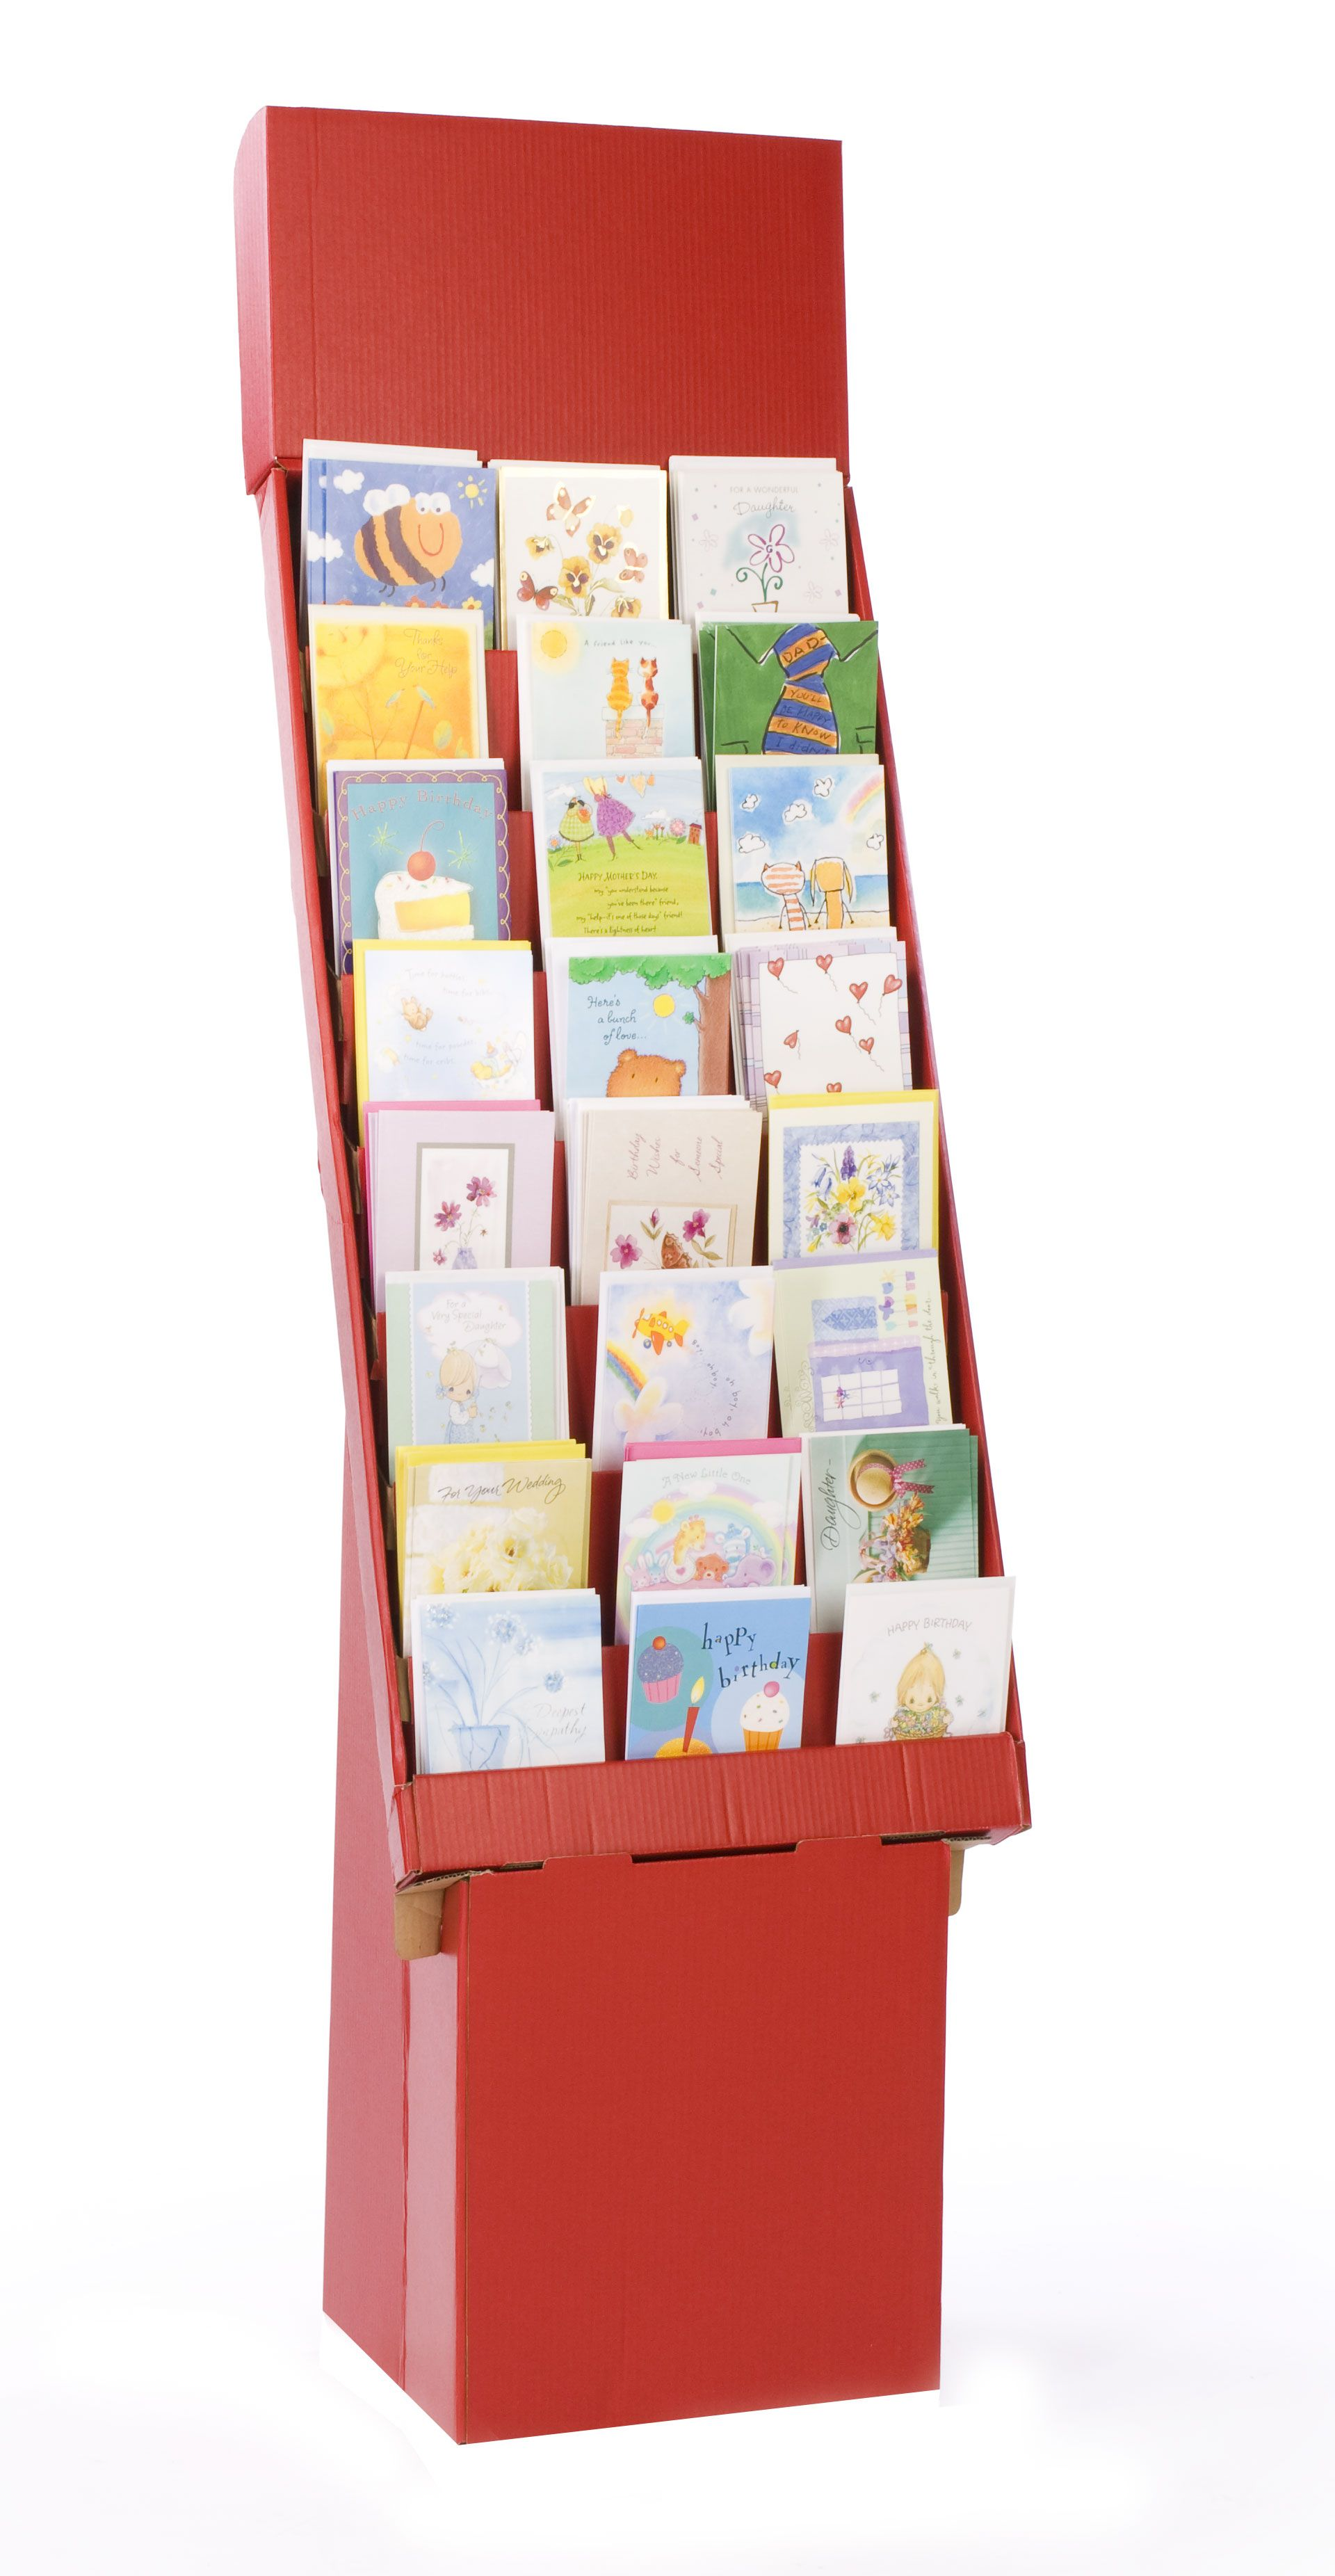 8 tiered cardboard greeting card display for floor removable header 8 tiered cardboard greeting card display for floor removable header red m4hsunfo